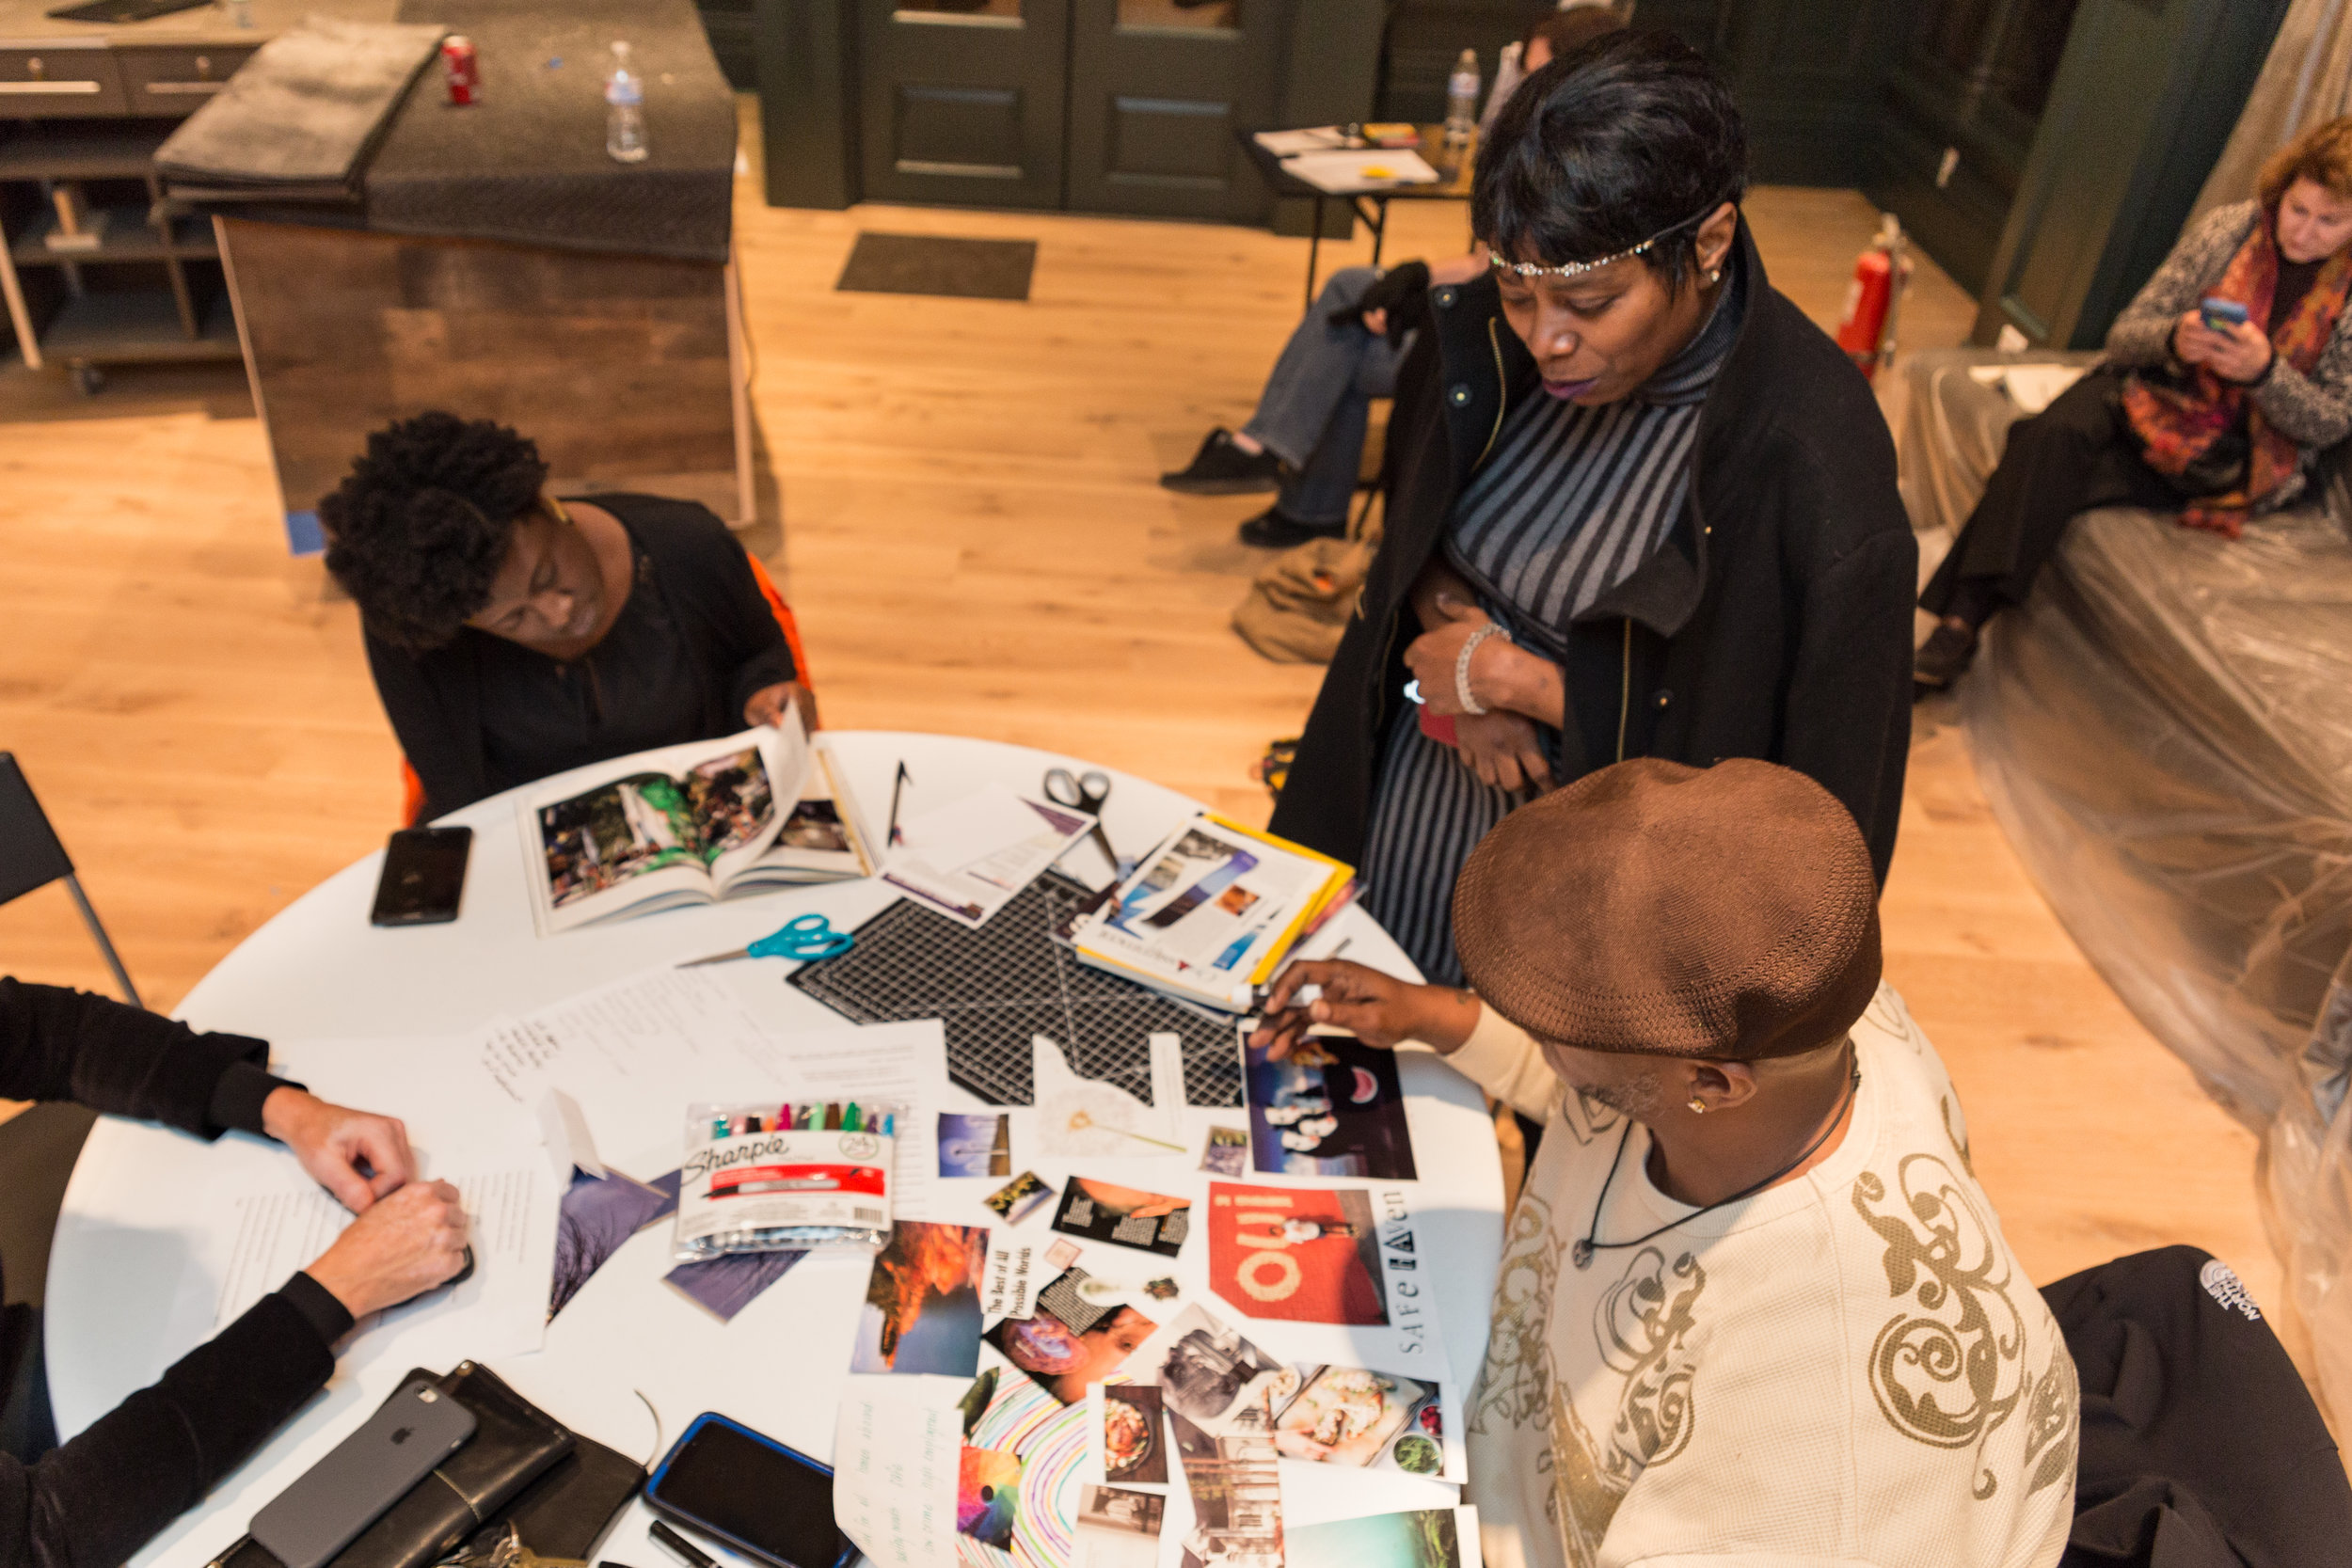 """Participants in the """"Reparations"""" charrette at Pittsburgh's City of Asylum, 2016. Photo by Heather Kresge."""